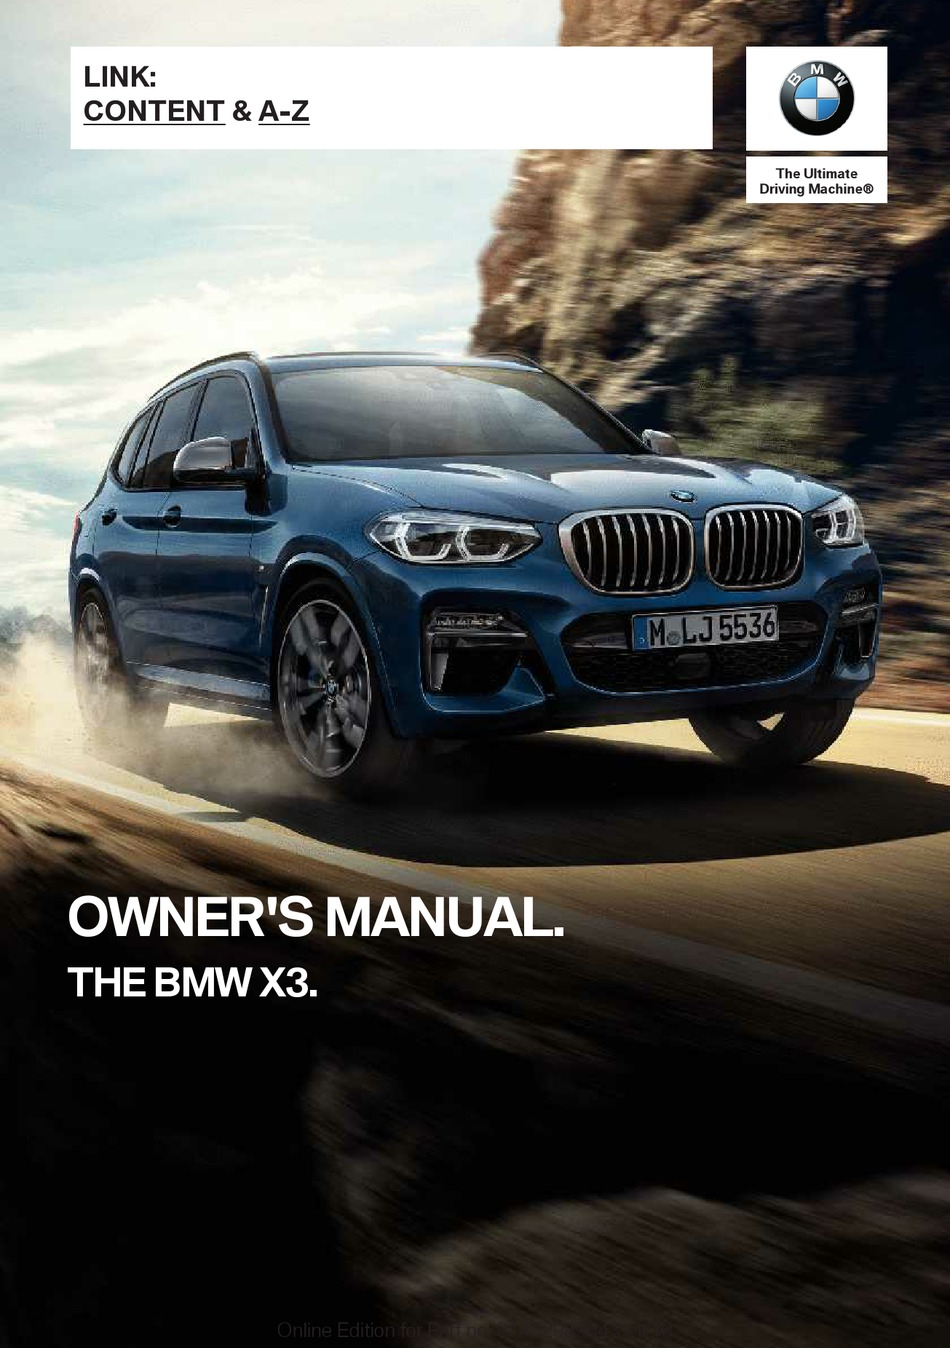 BMW X3 2018 OWNER'S MANUAL Pdf Download | ManualsLib